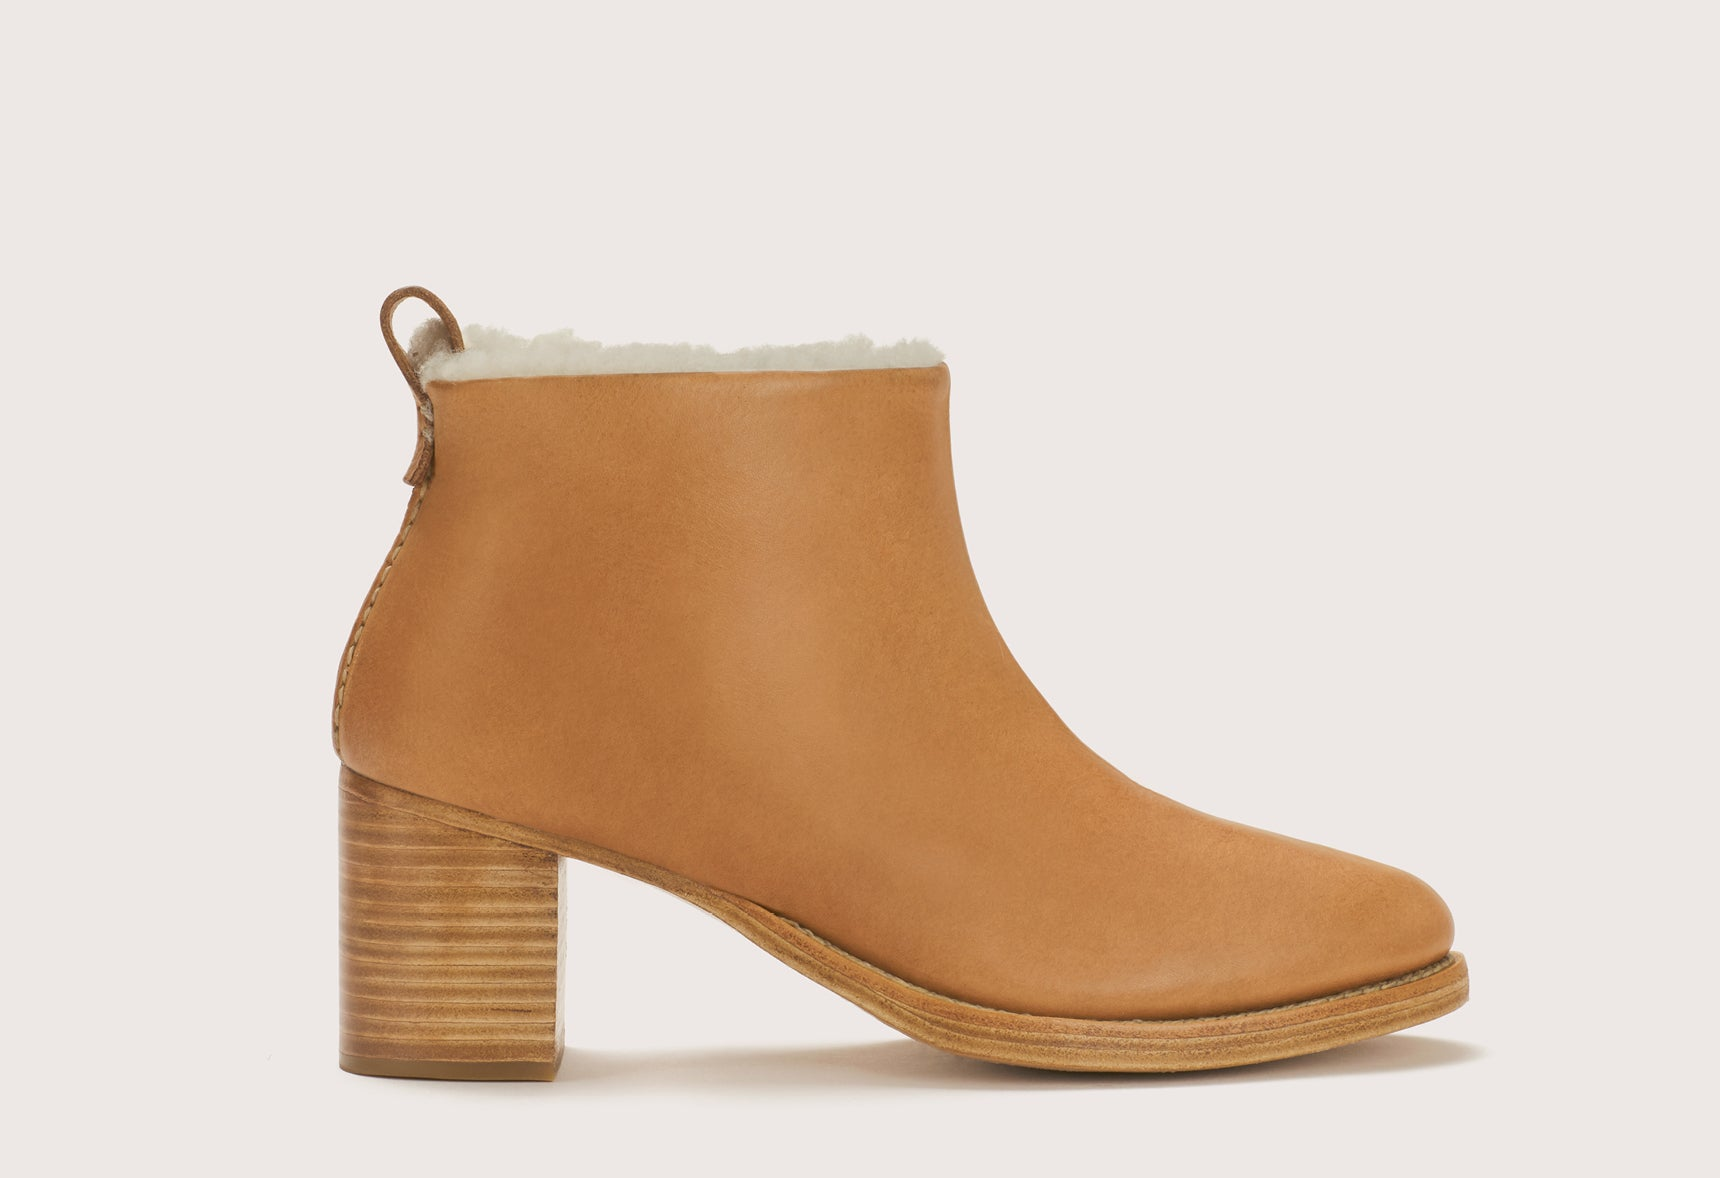 BRAIDED SHEARLING MID HEEL BOOT - WFBSMHBTL_TAN